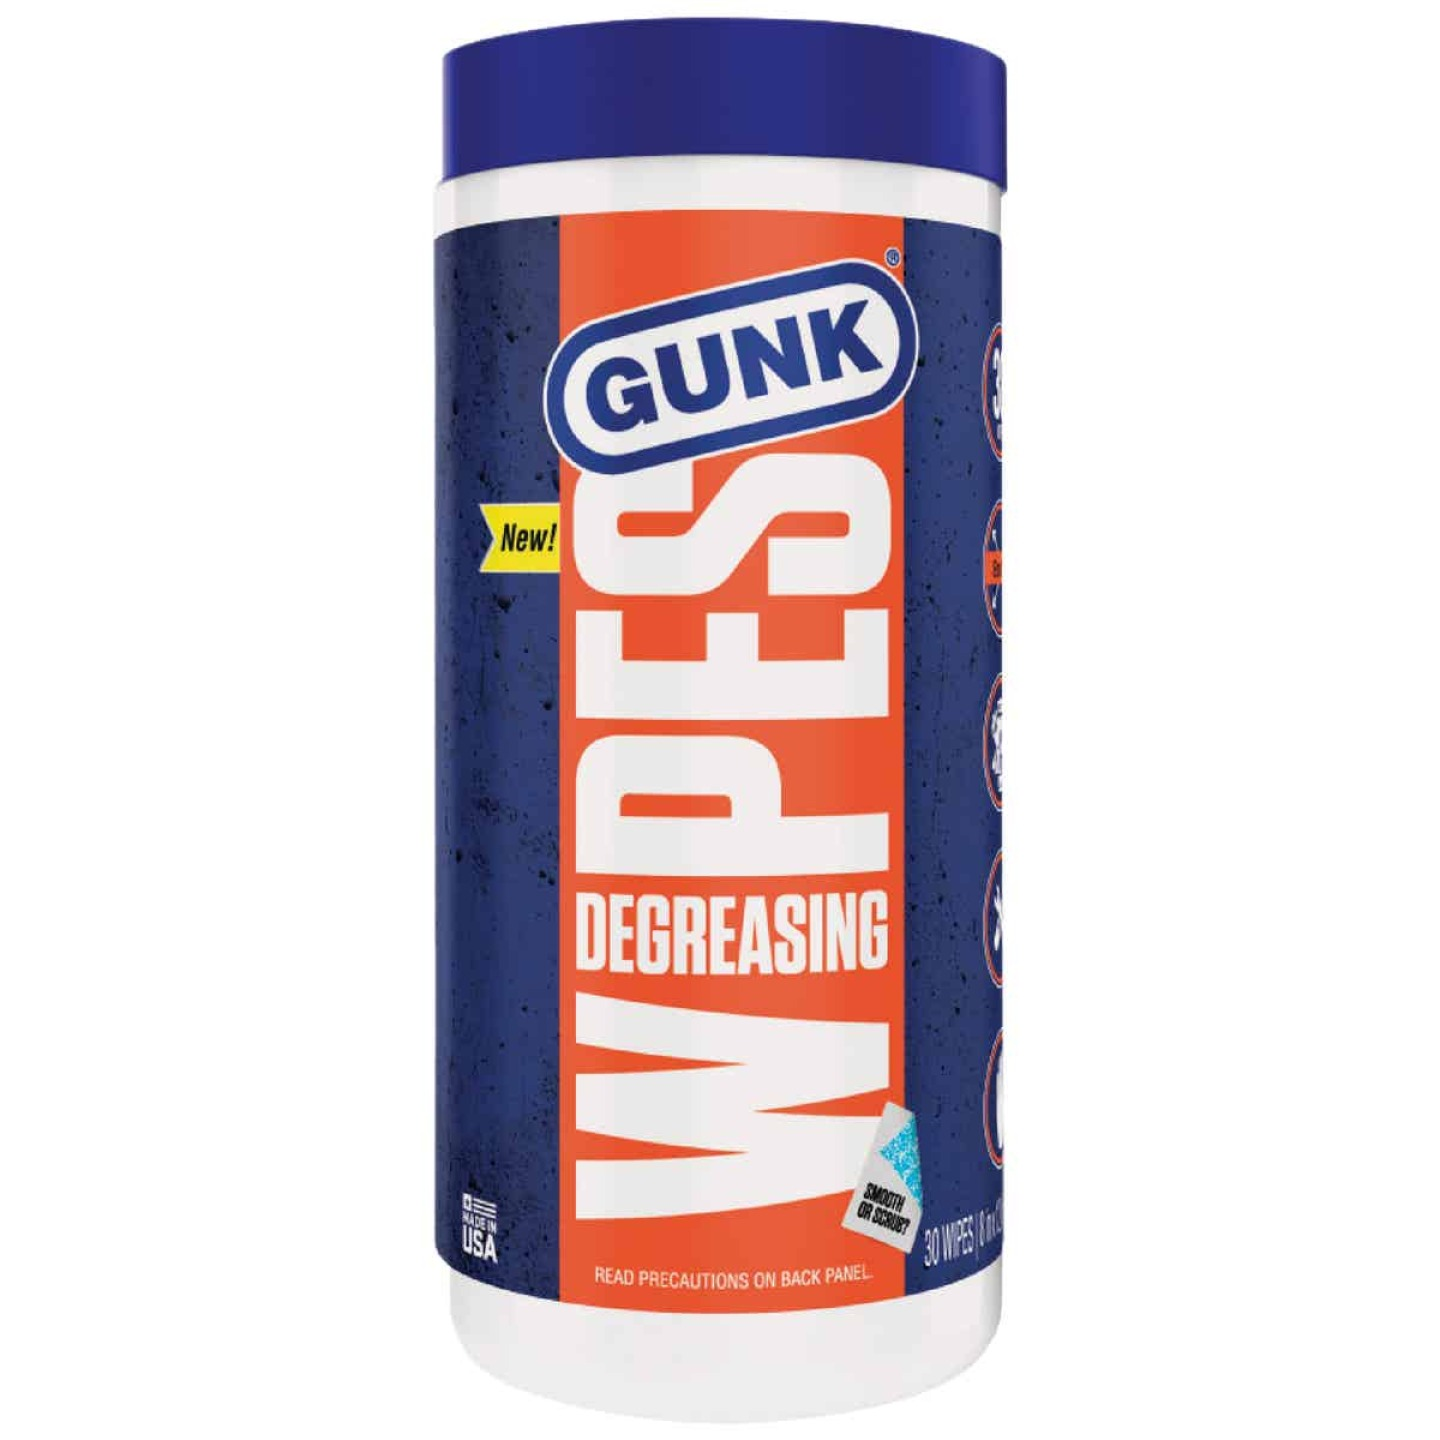 Gunk Degreasing Engine Cleaner Wipes (30-Count) Image 1